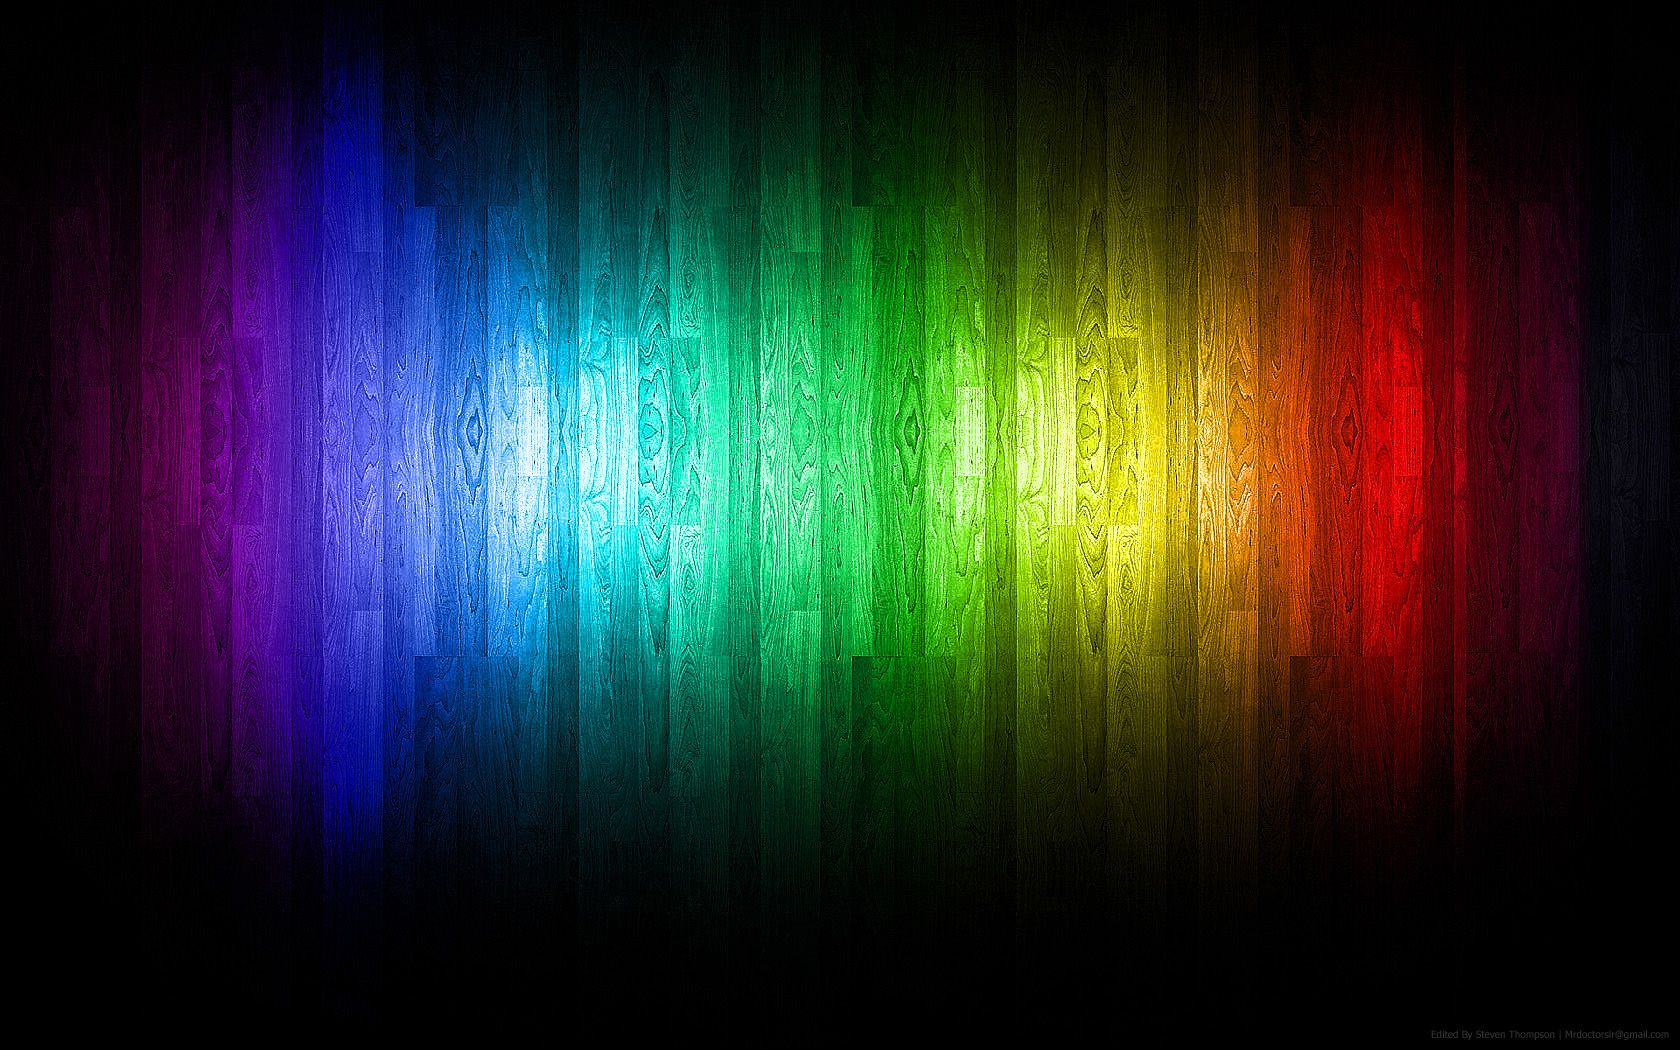 Hdq beautiful spectrum images wallpapers gallery images wallpapers